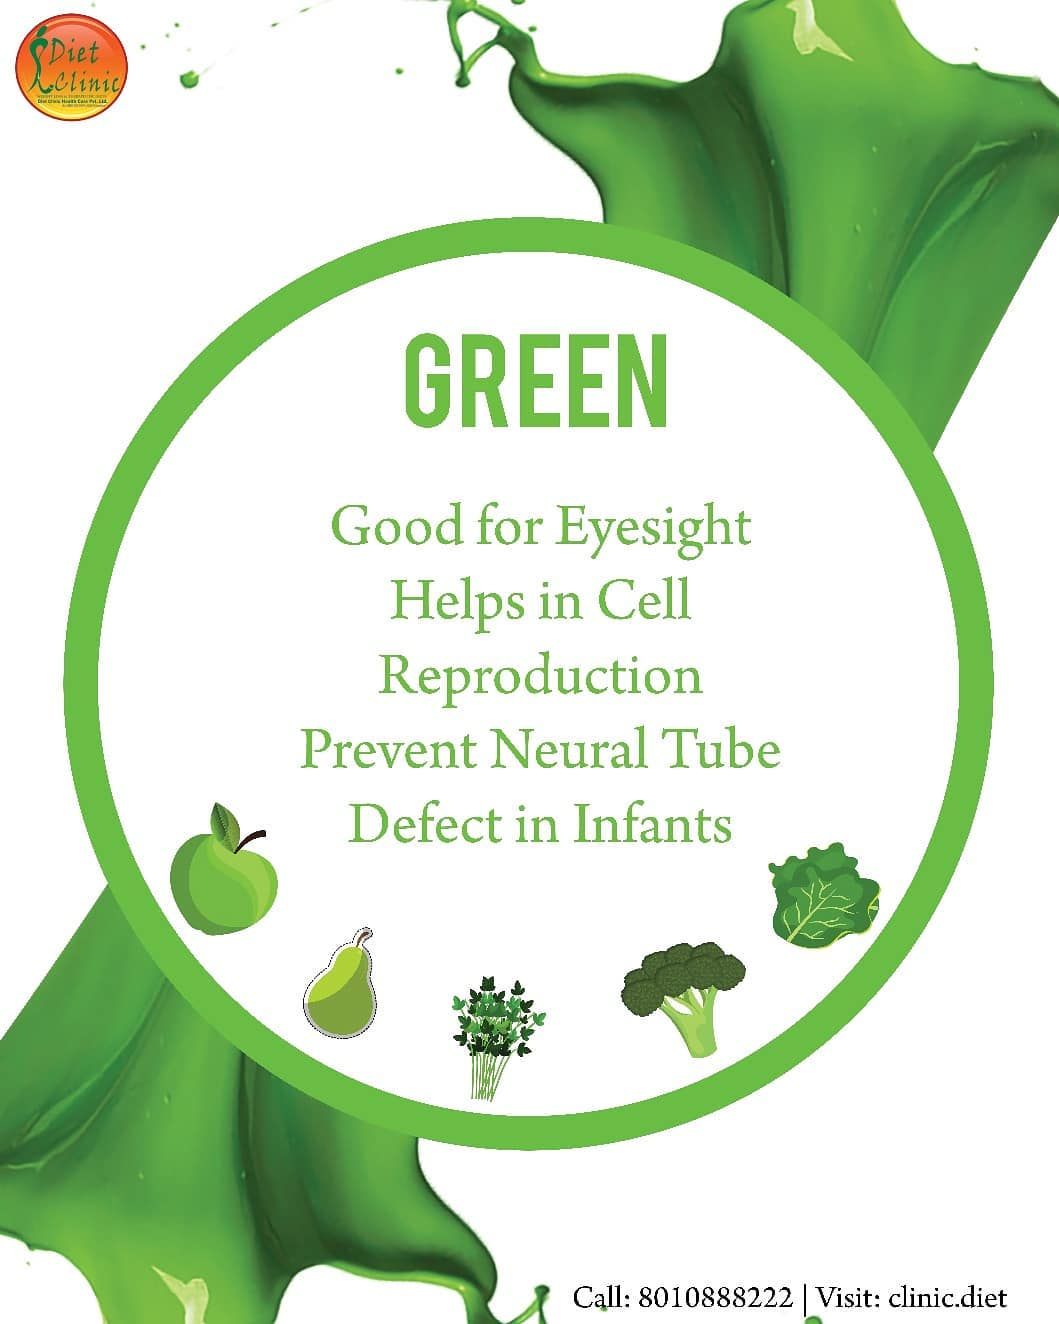 Benefits of Green Types Food